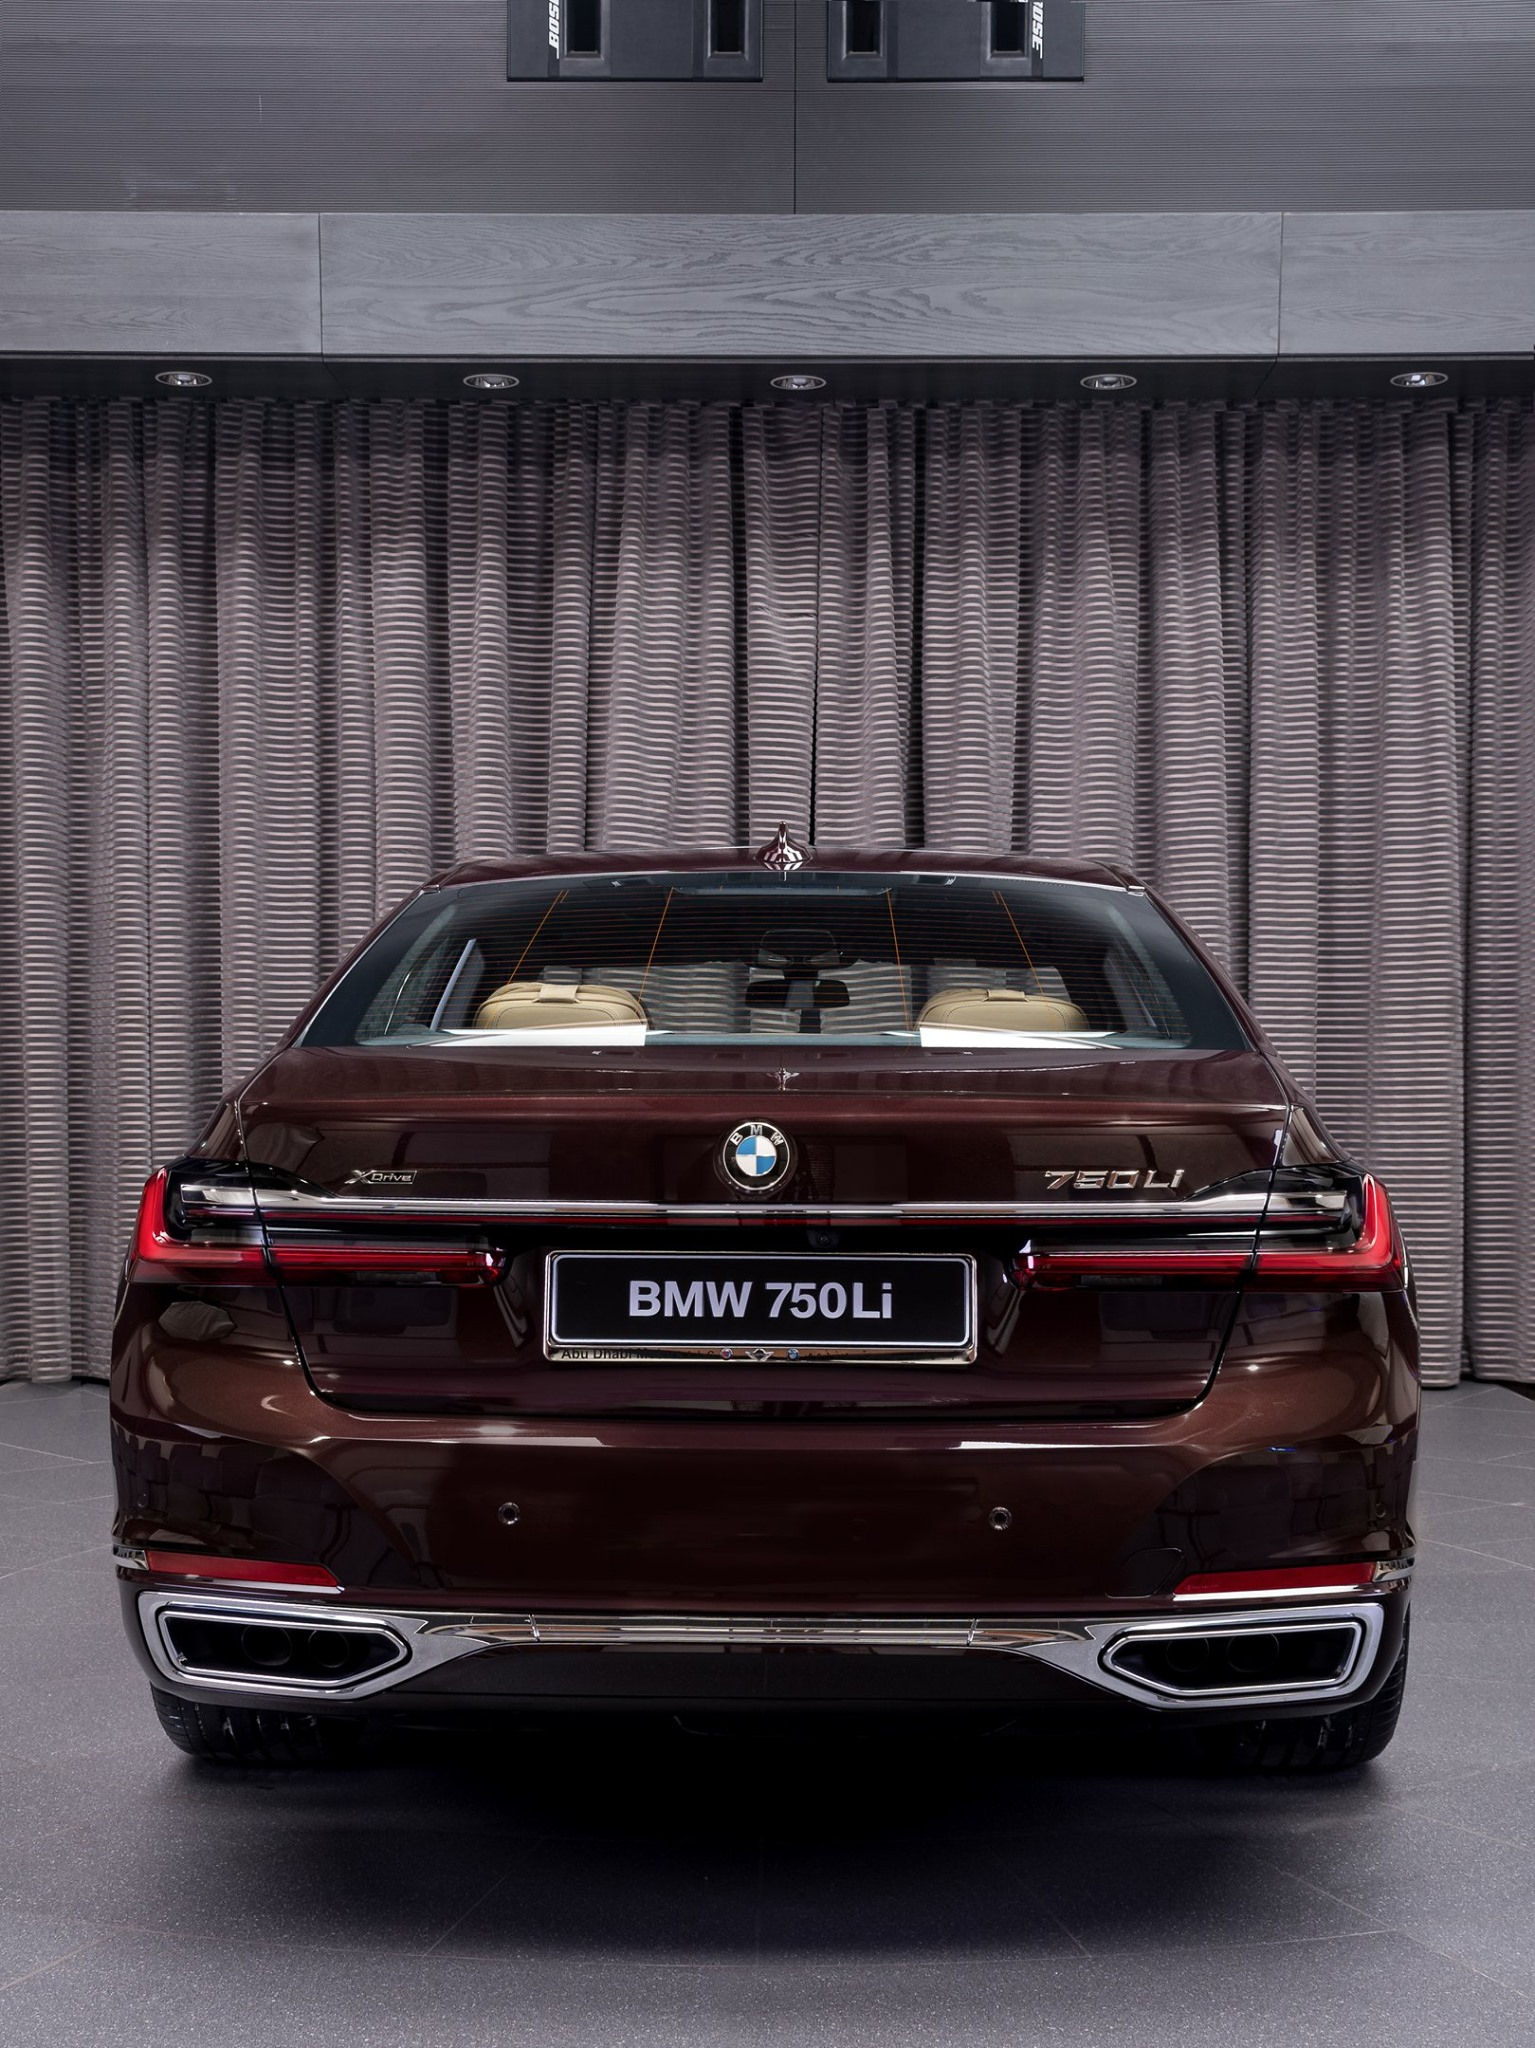 2020_BMW_750Li_Royal_Burgundy_Red_0006